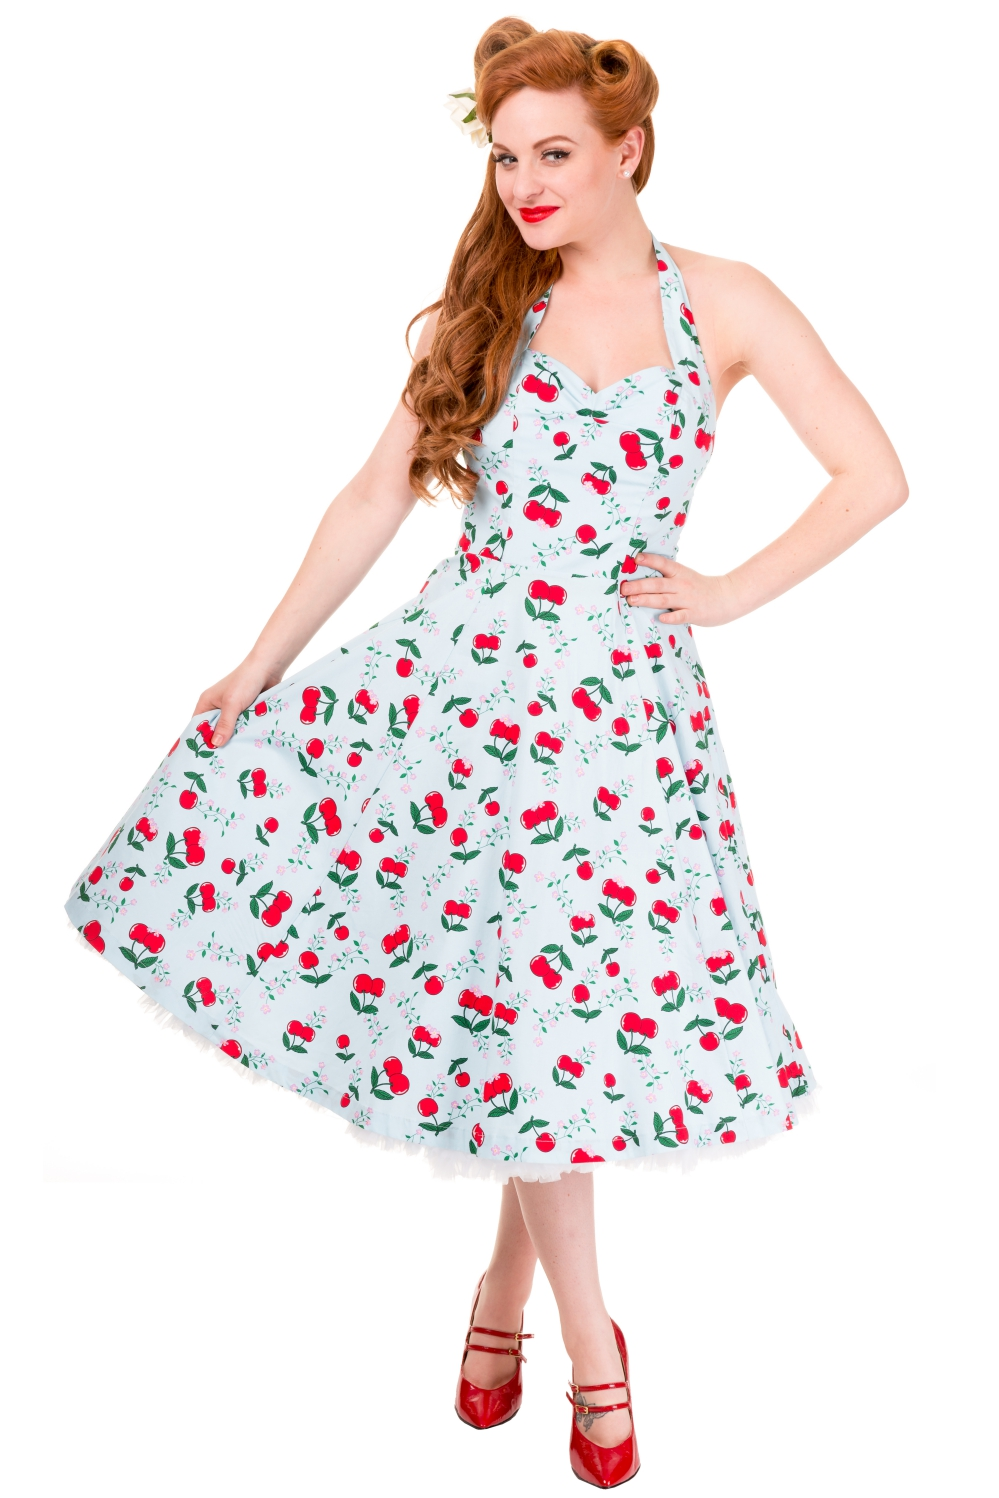 Vintage Blind Side Banned Cherry Dress